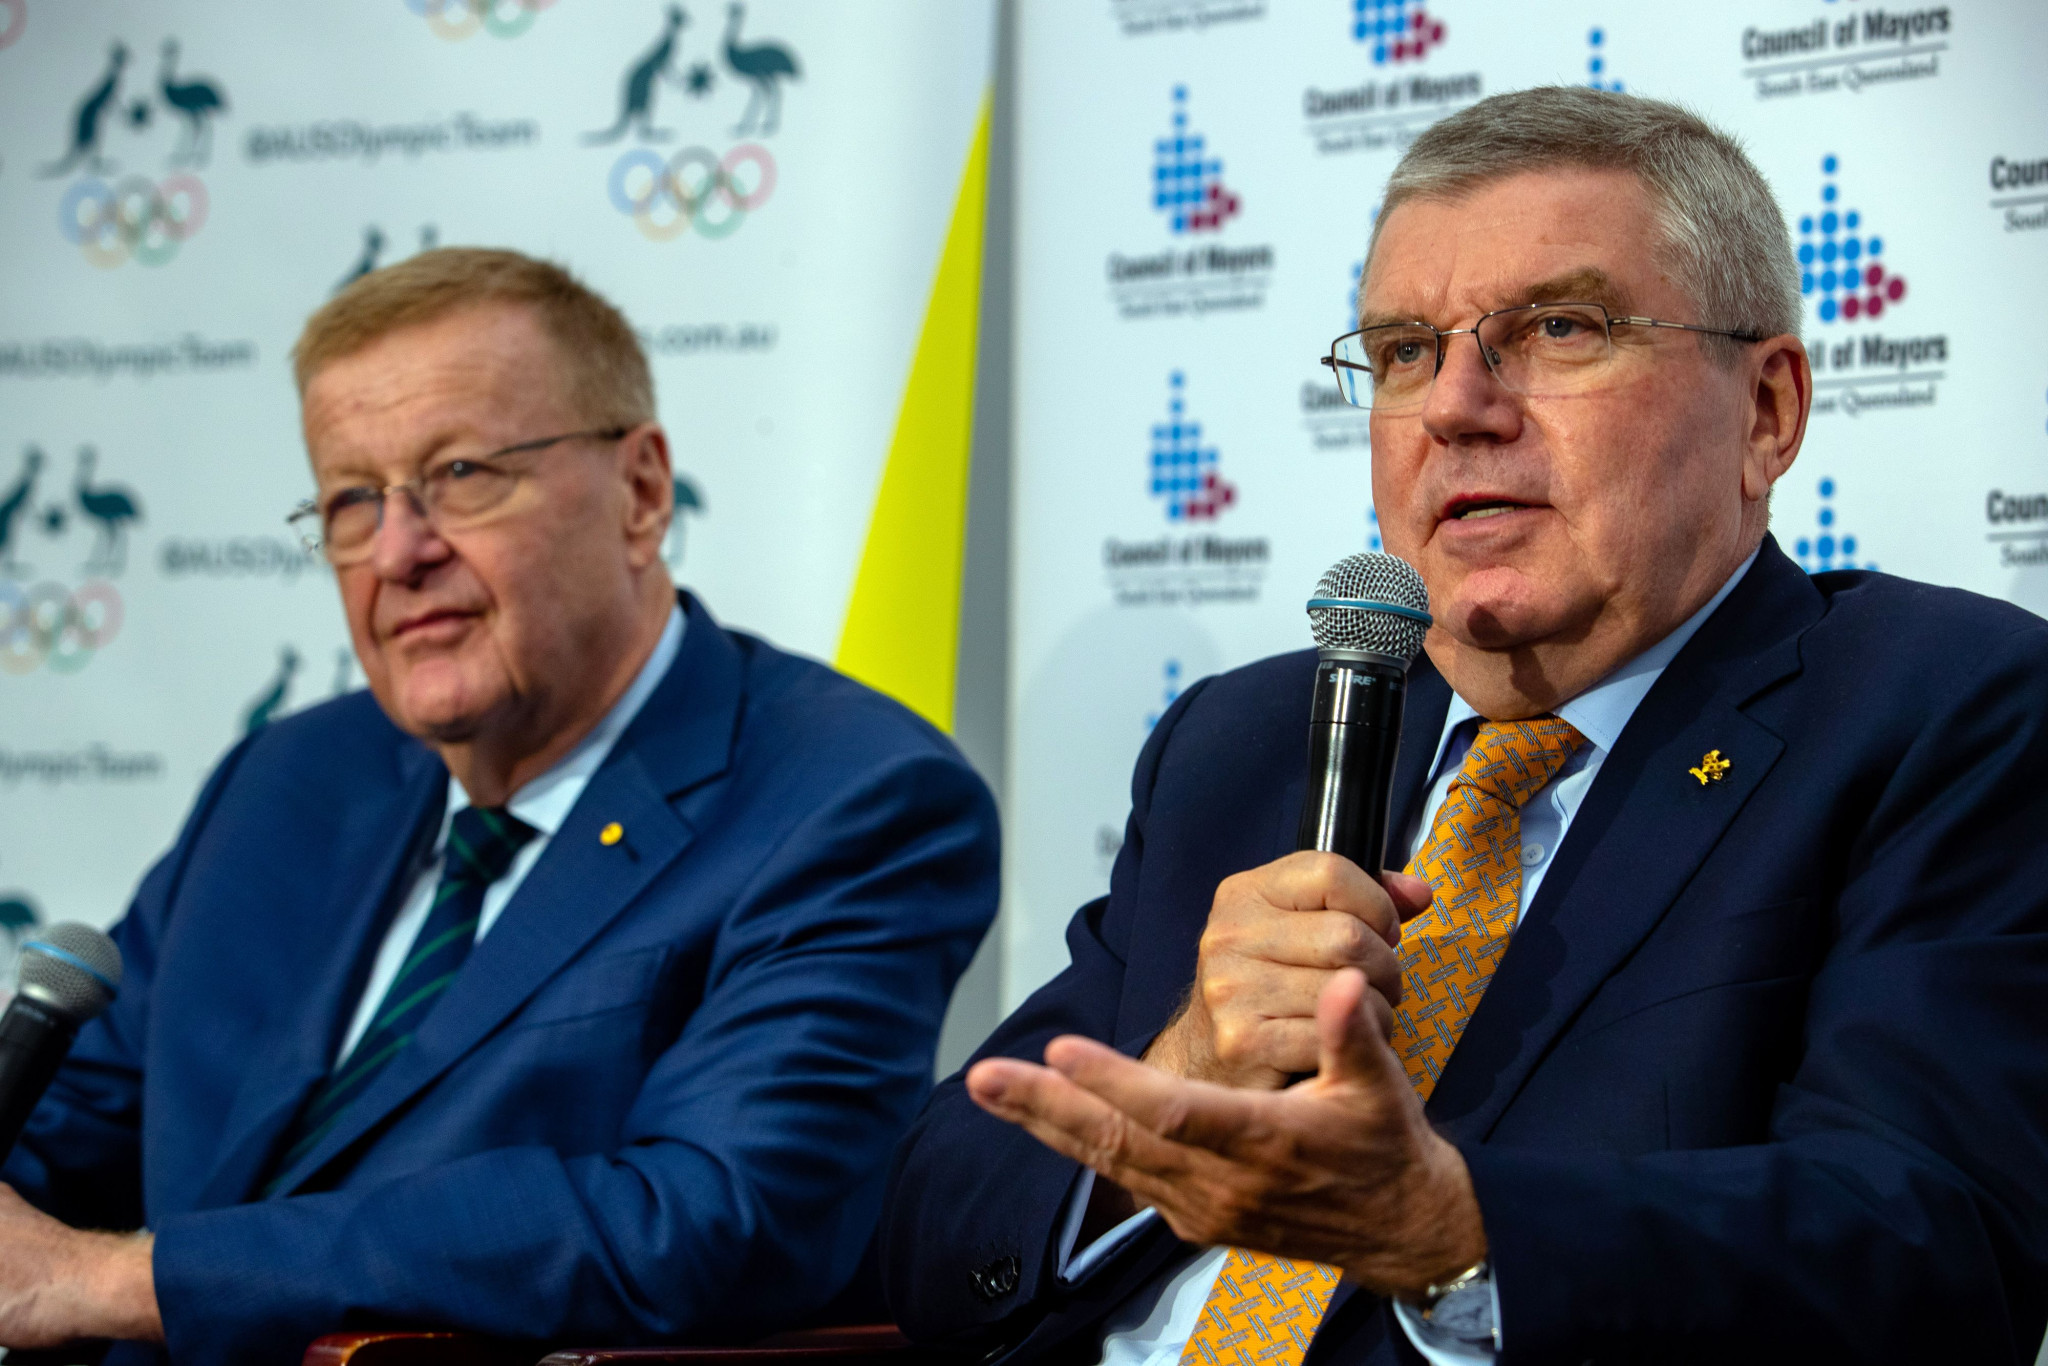 IOC President Thomas Bach, right, who has described Brisbane's candidacy as